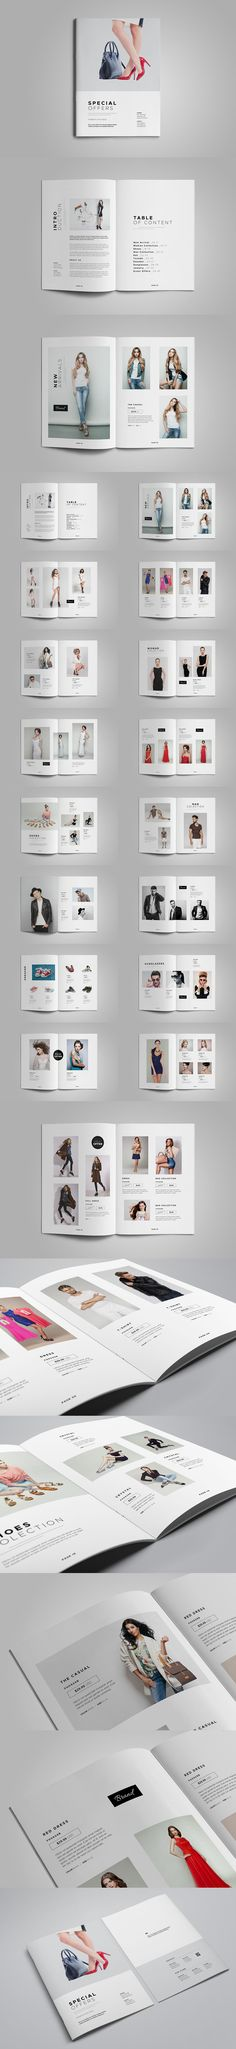 Product Catalog Template InDesign INDD - 36 Unique Pages, A4 & Letter sizes #lookbook